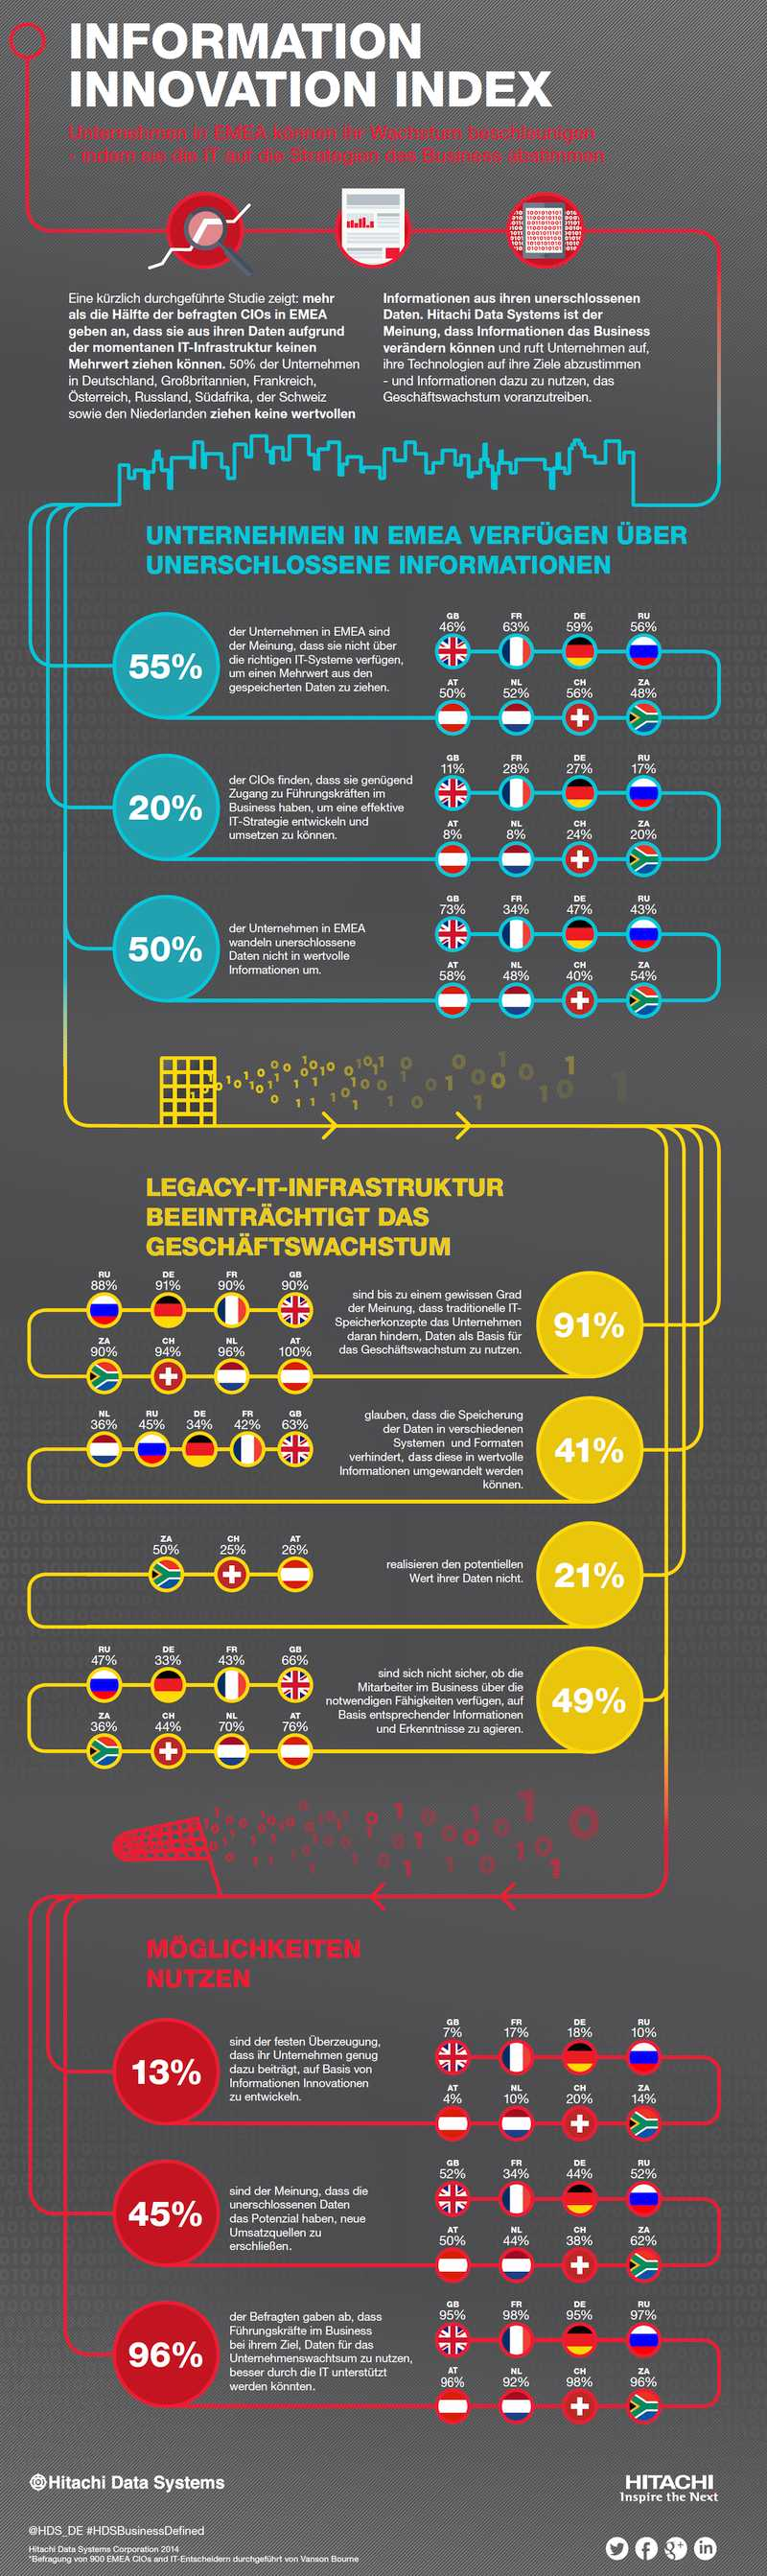 infografik Hitachi Data Systems GER Innovation